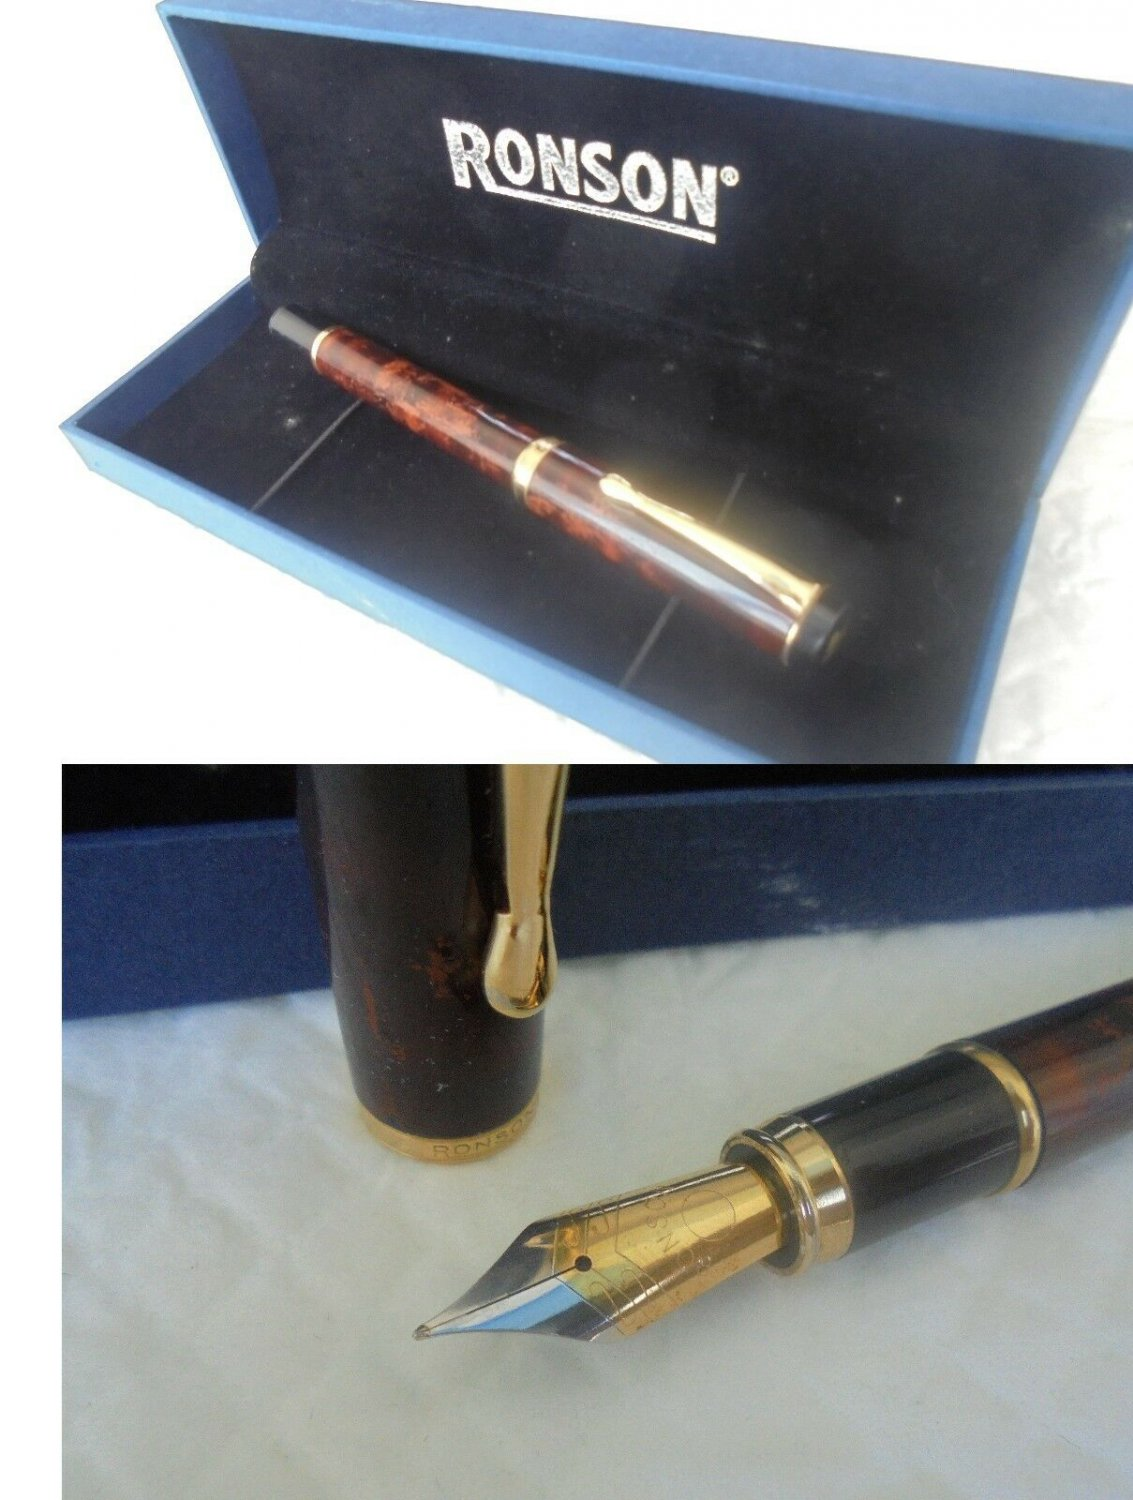 RONSON fountain pen in gift box Original